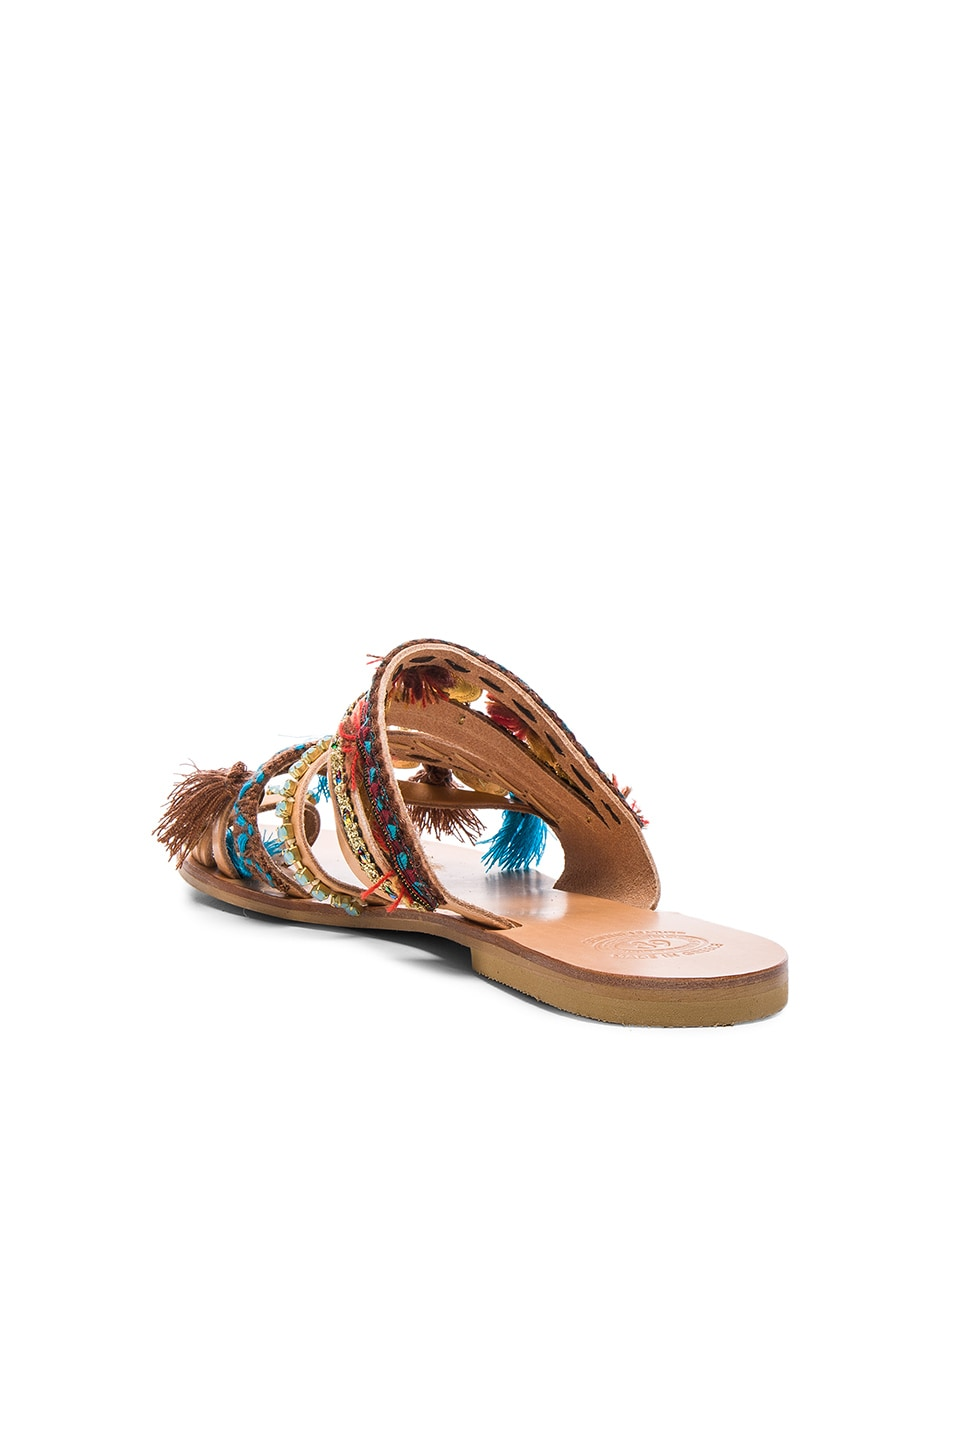 Image 4 of Elina Linardaki Leather Marrakech Sandals in Multi